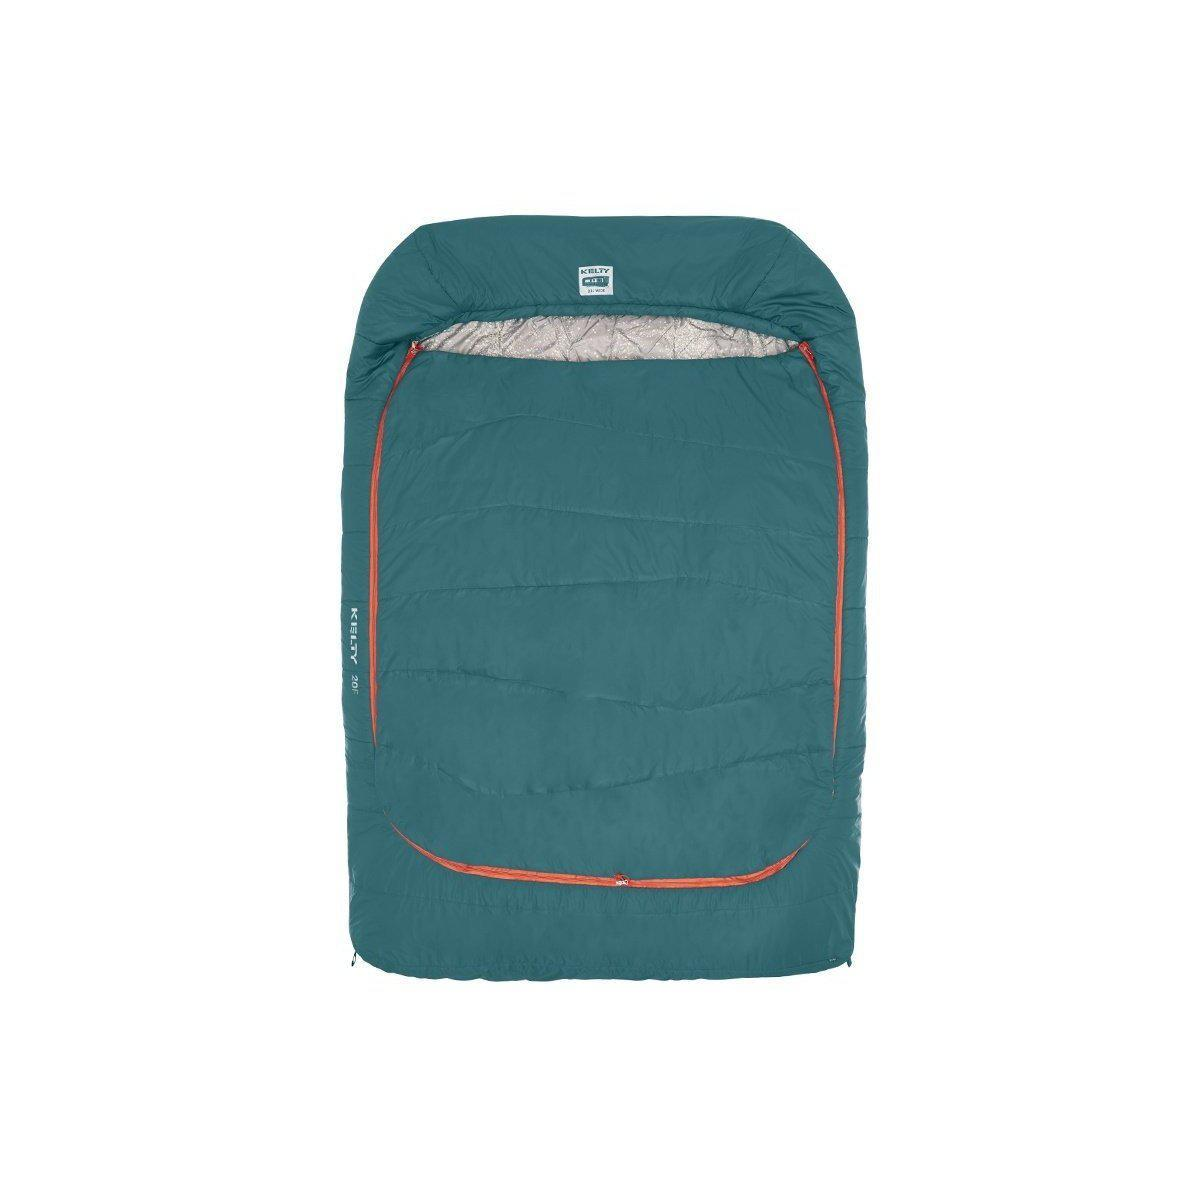 Kelty Tru Comfort Double Wide 20F Sleeping Bag-Sleeping Bag-Kelty-Teal-GetOutland.com